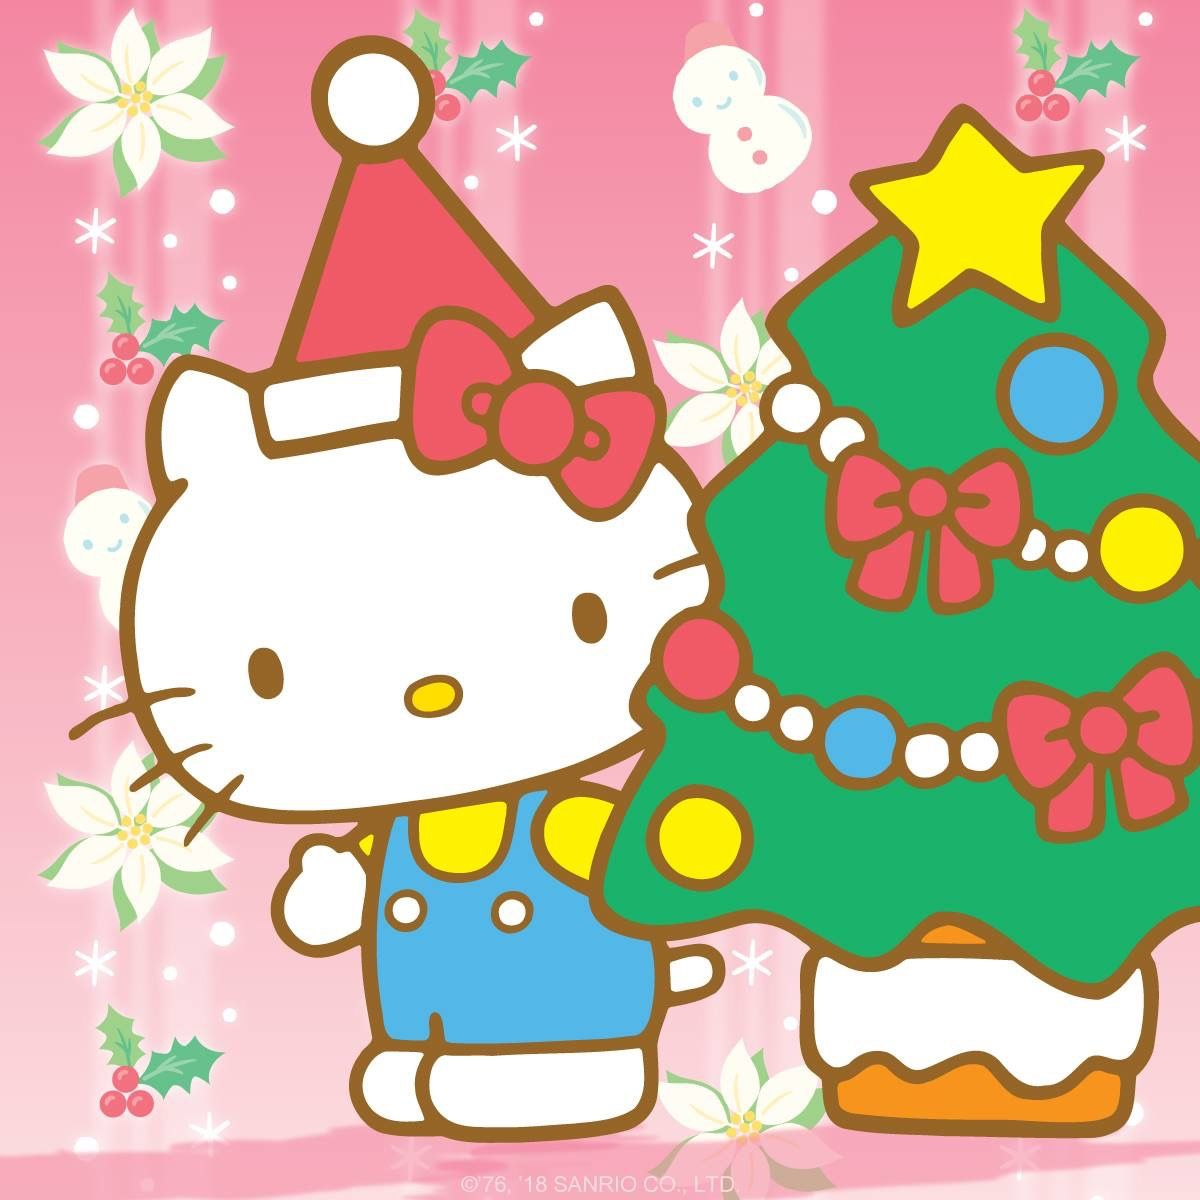 Happy Holidays From HelloKitty ❤️